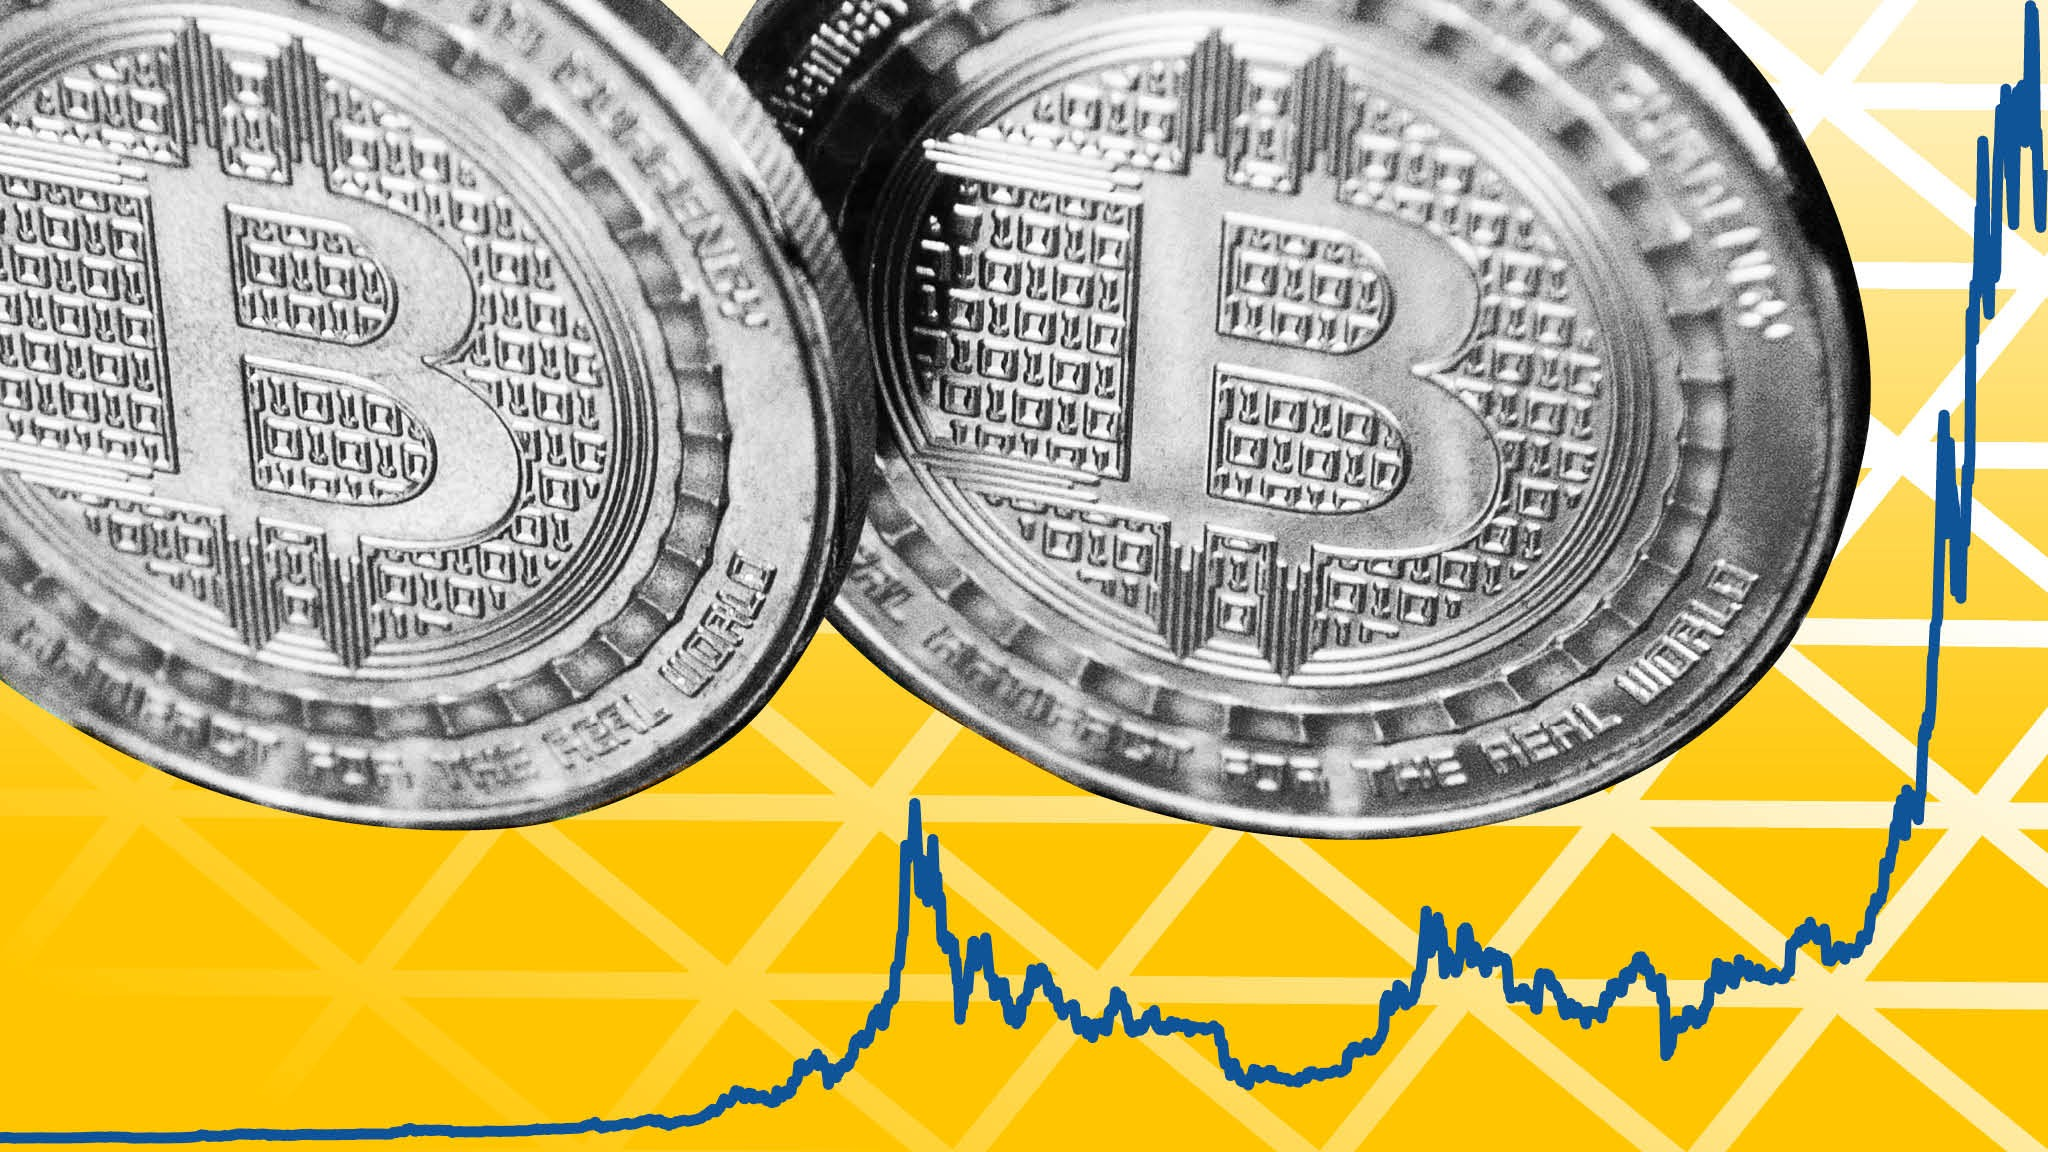 Bitcoin: too good to miss or a bubble ready to burst?   Financial Times